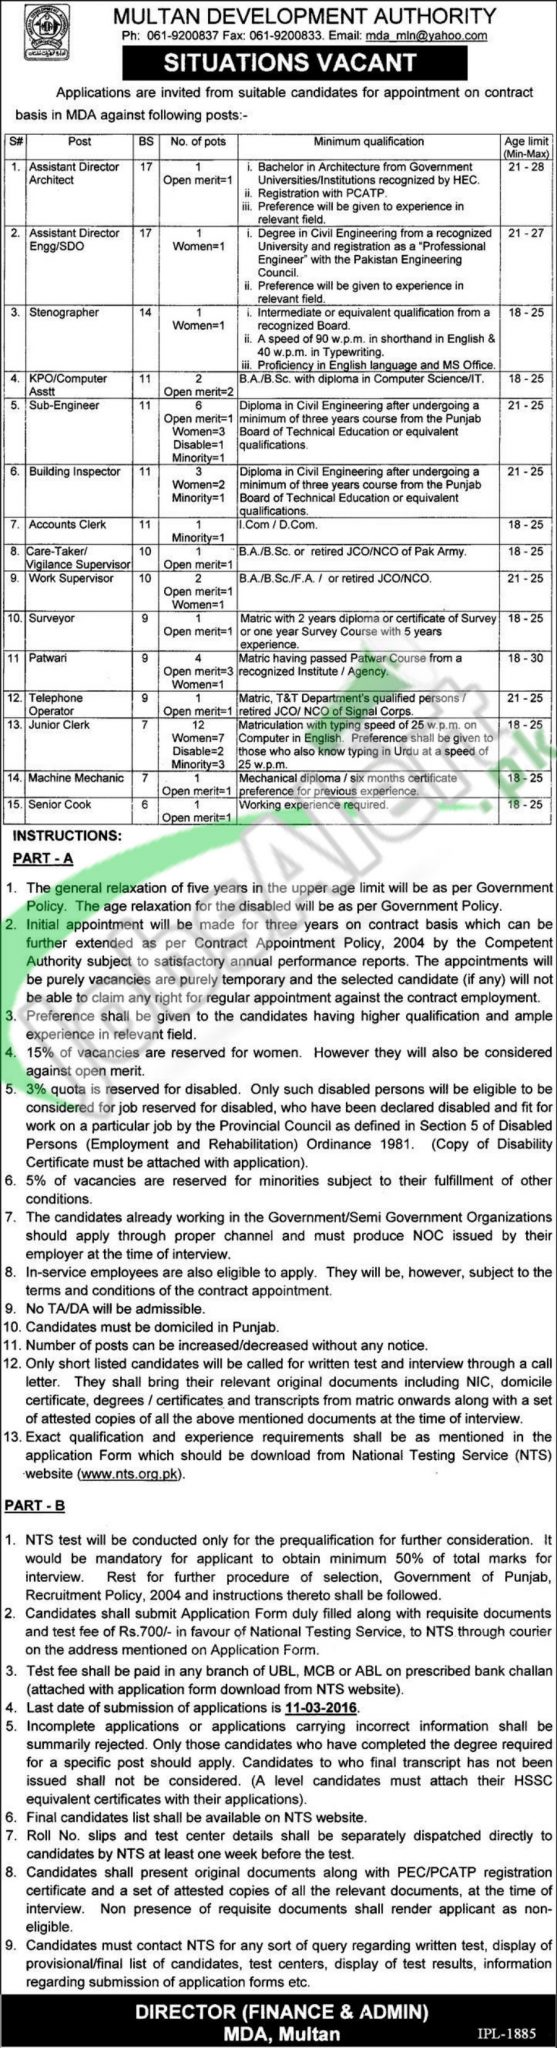 Situations Vacant in Multan Development Authority 20 Feb 2016 NTS Application Form Latest Advertisement